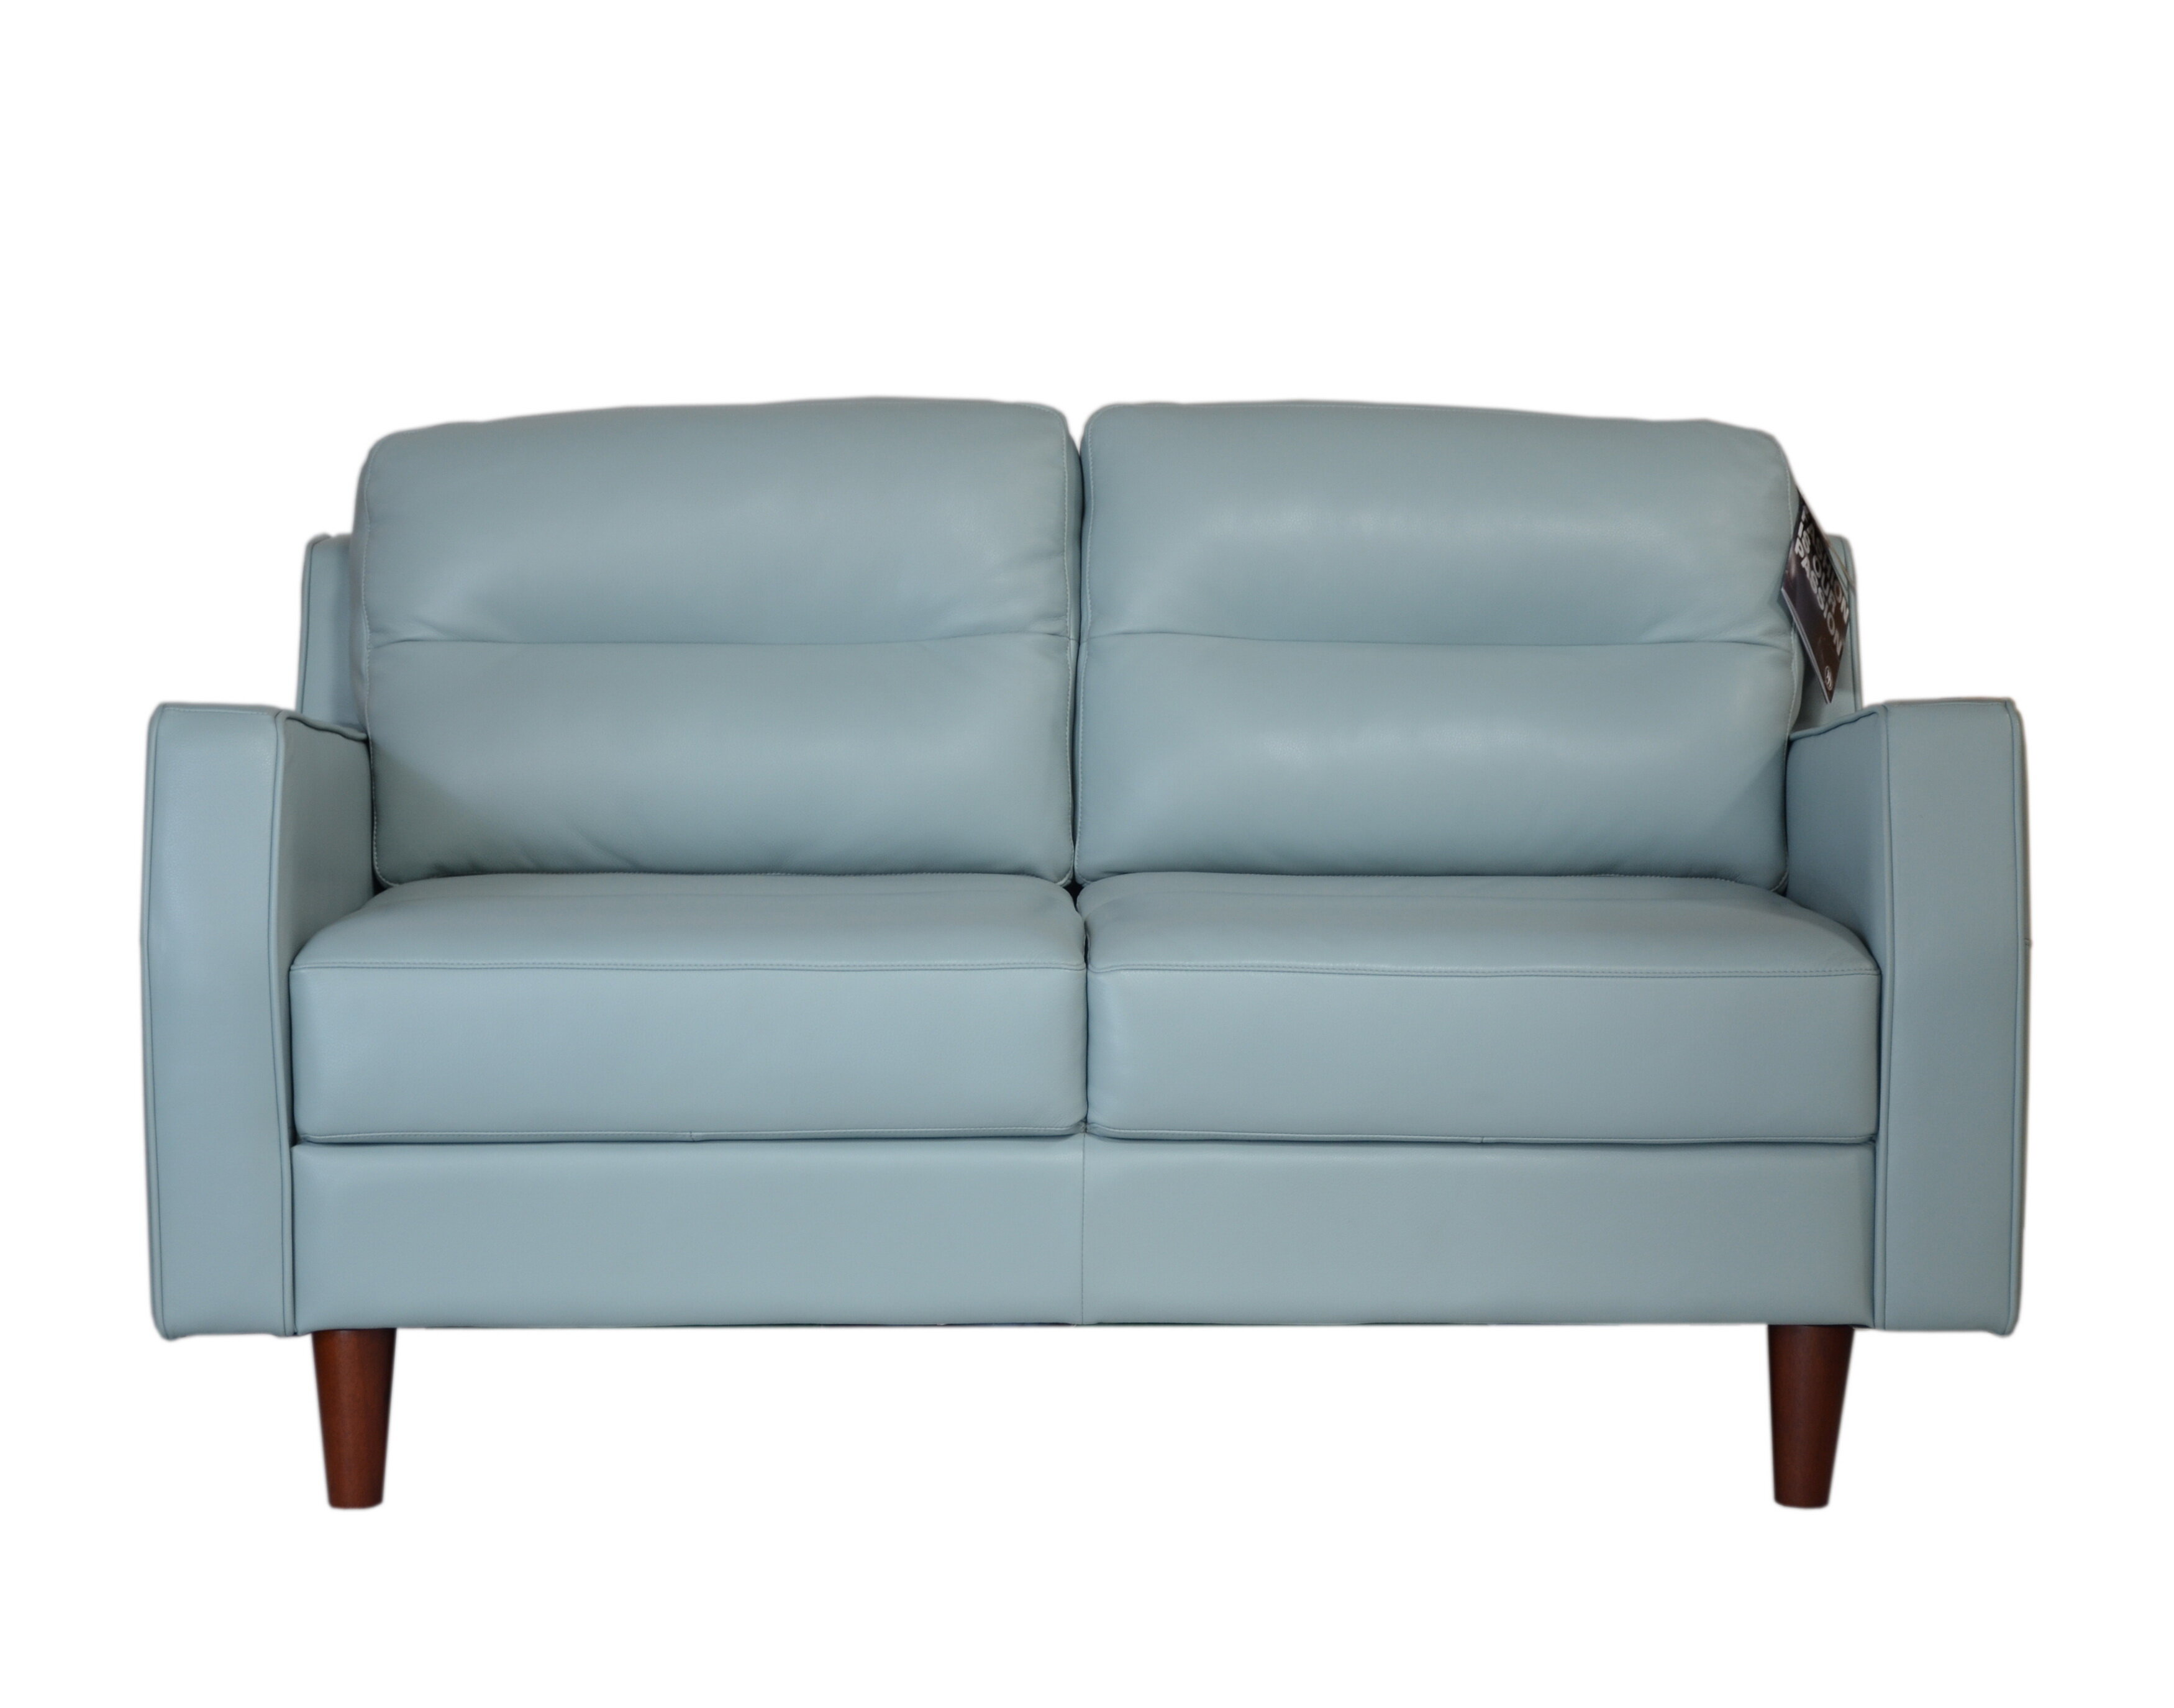 Teal Leather Loveseat Coffee Tables Ideas